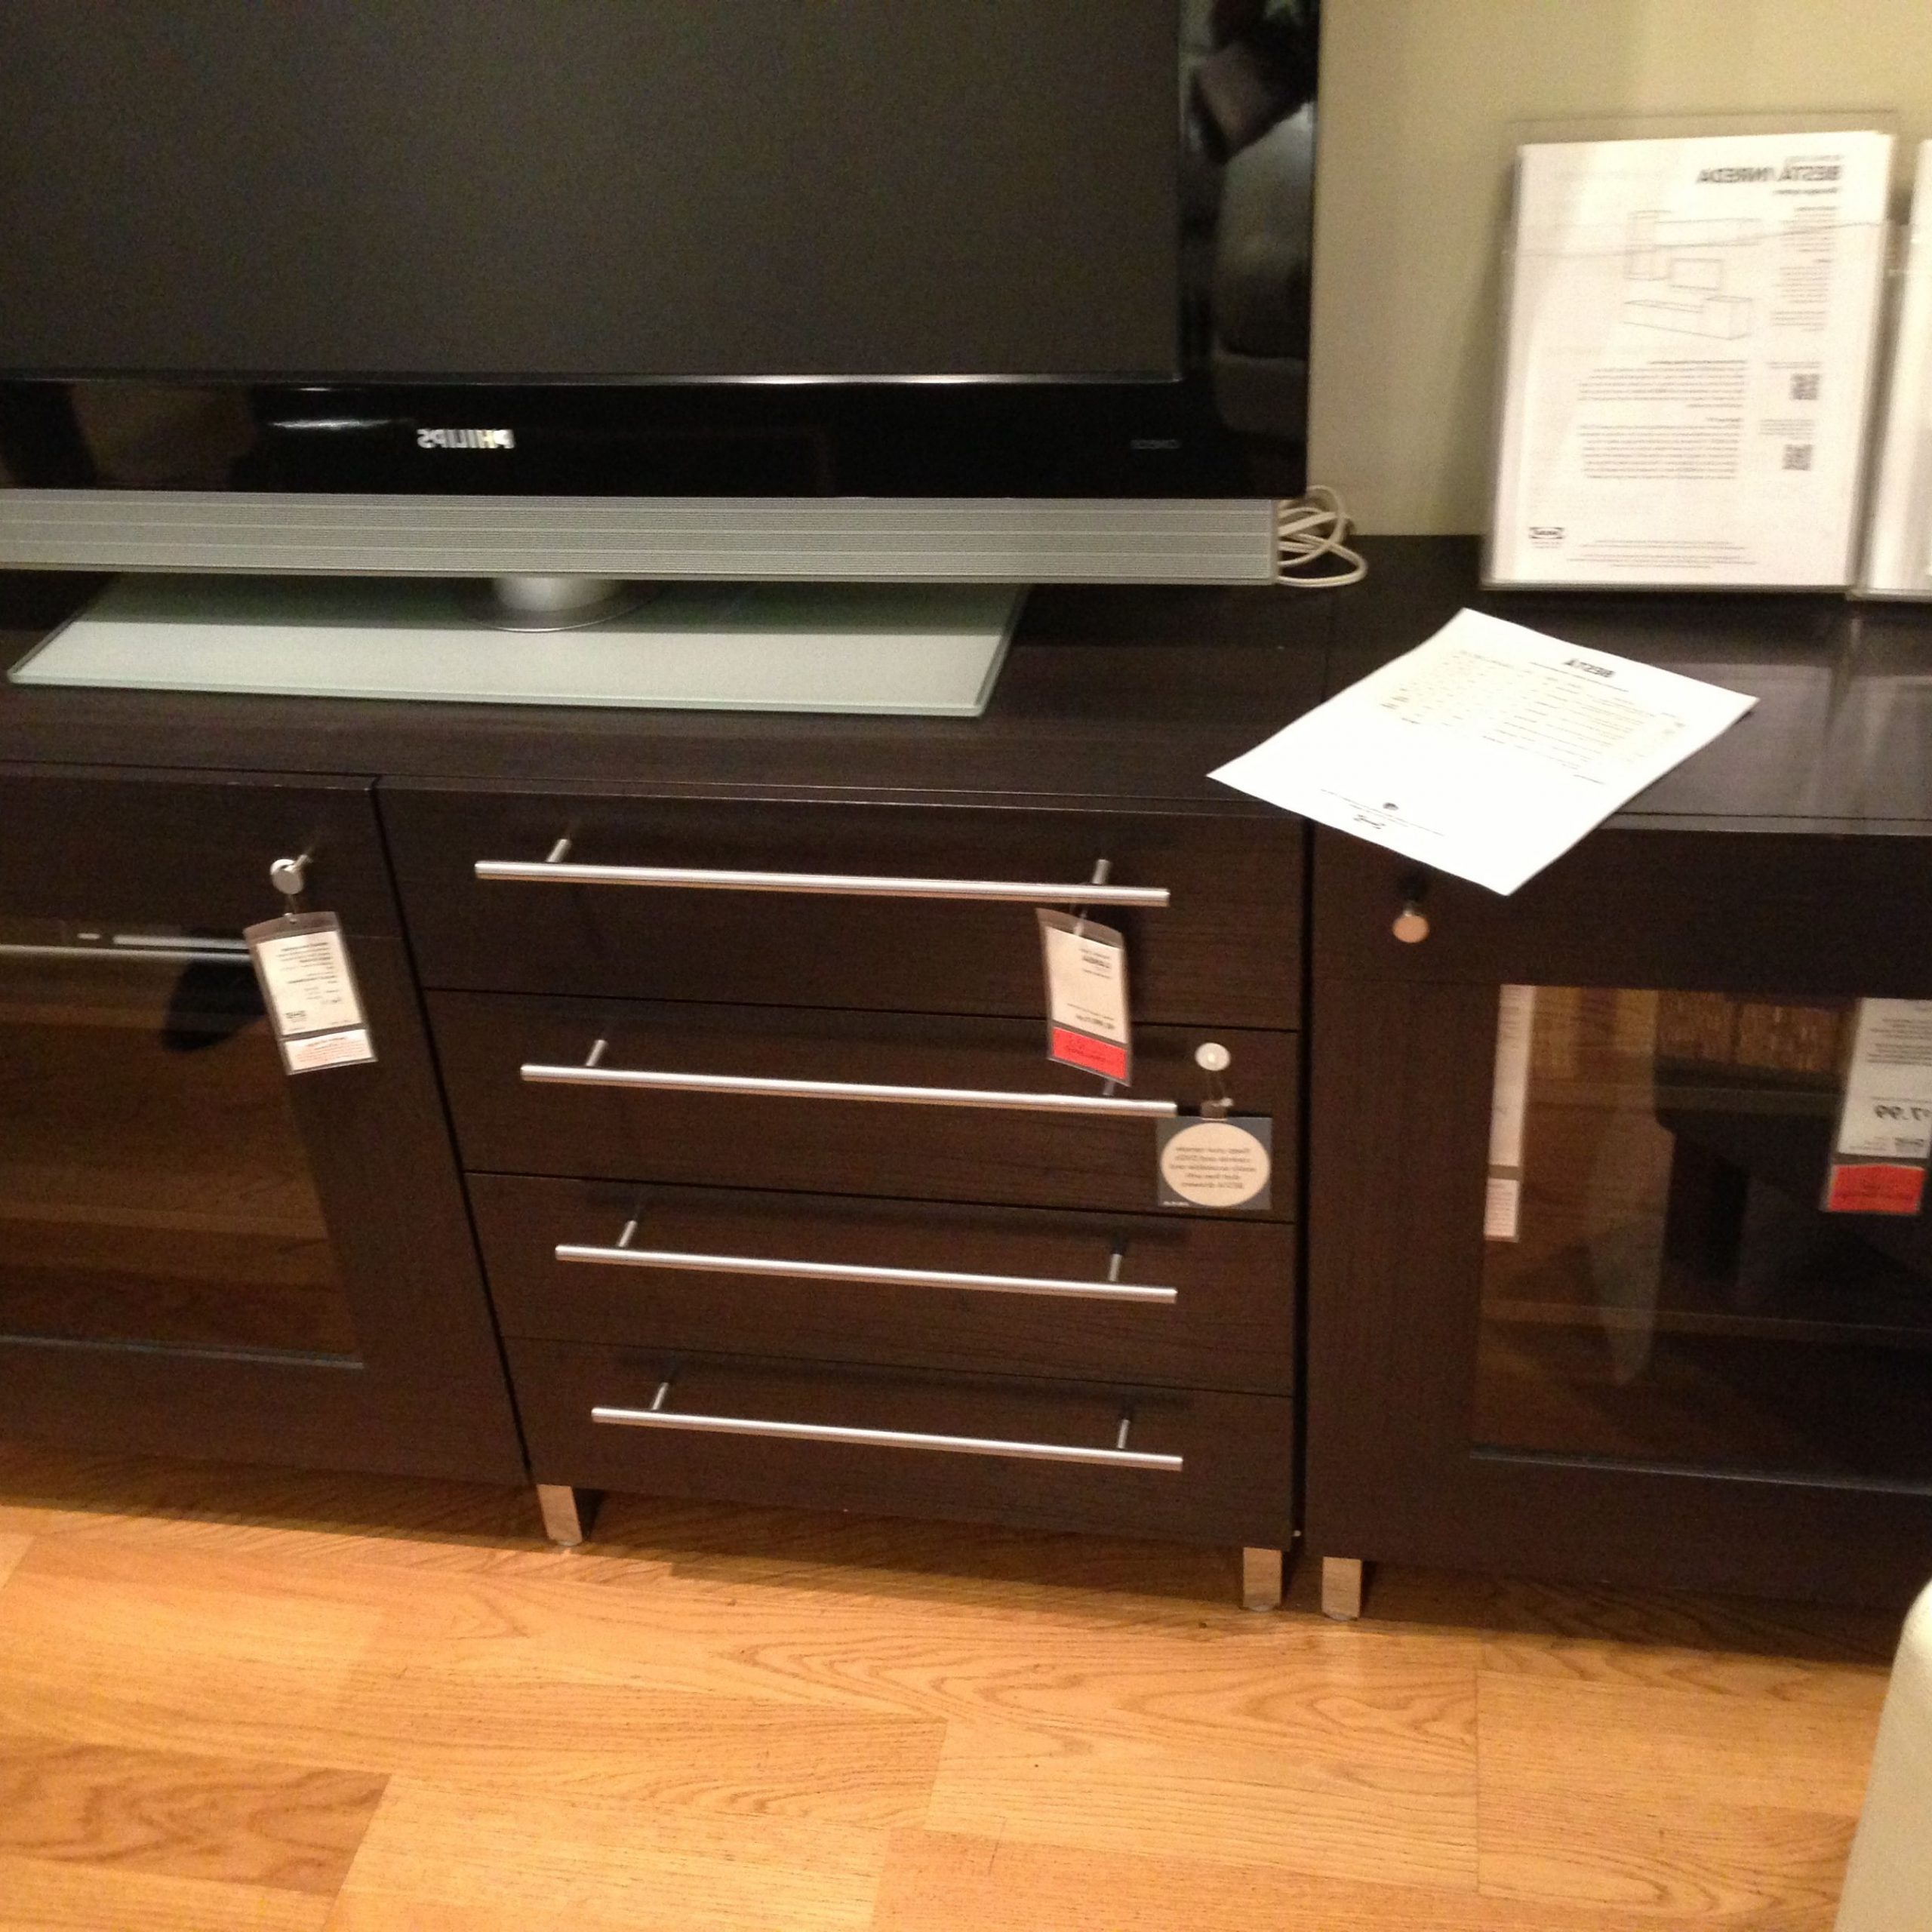 Tv Stand From Ikea (View 1 of 20)